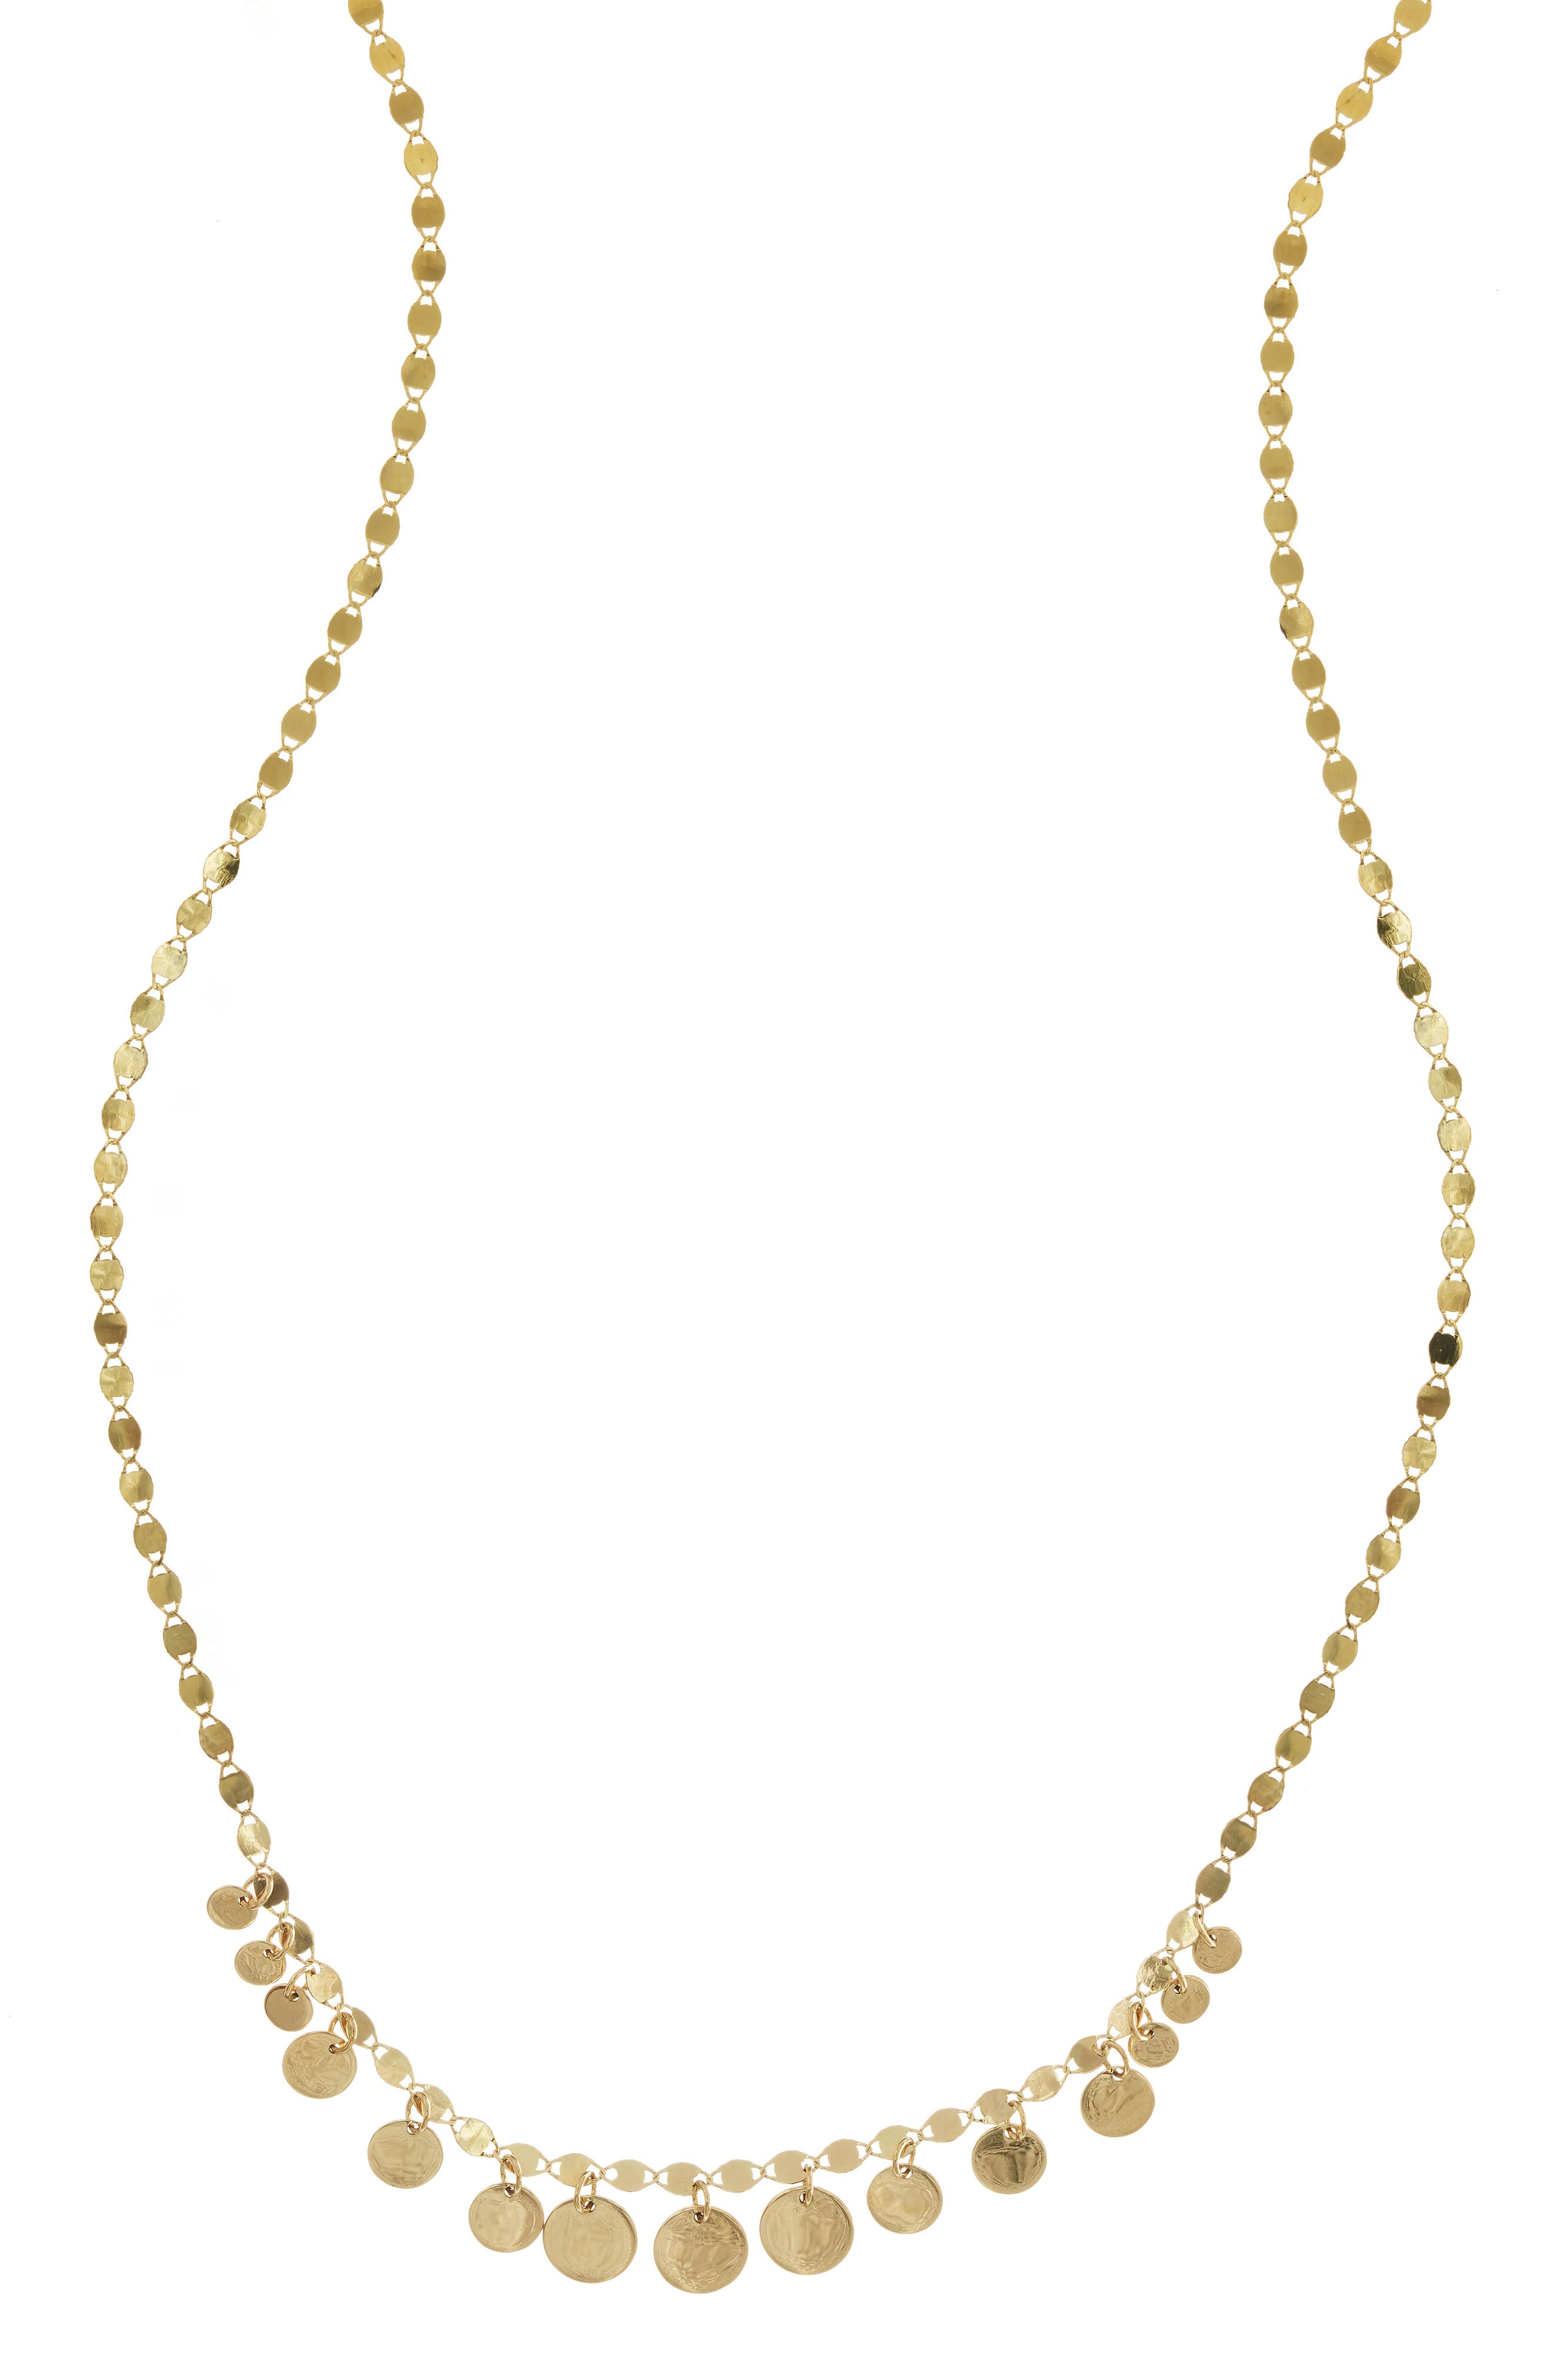 Lane Jewelry Frontal Necklace,                         Main,                         color, YELLOW GOLD